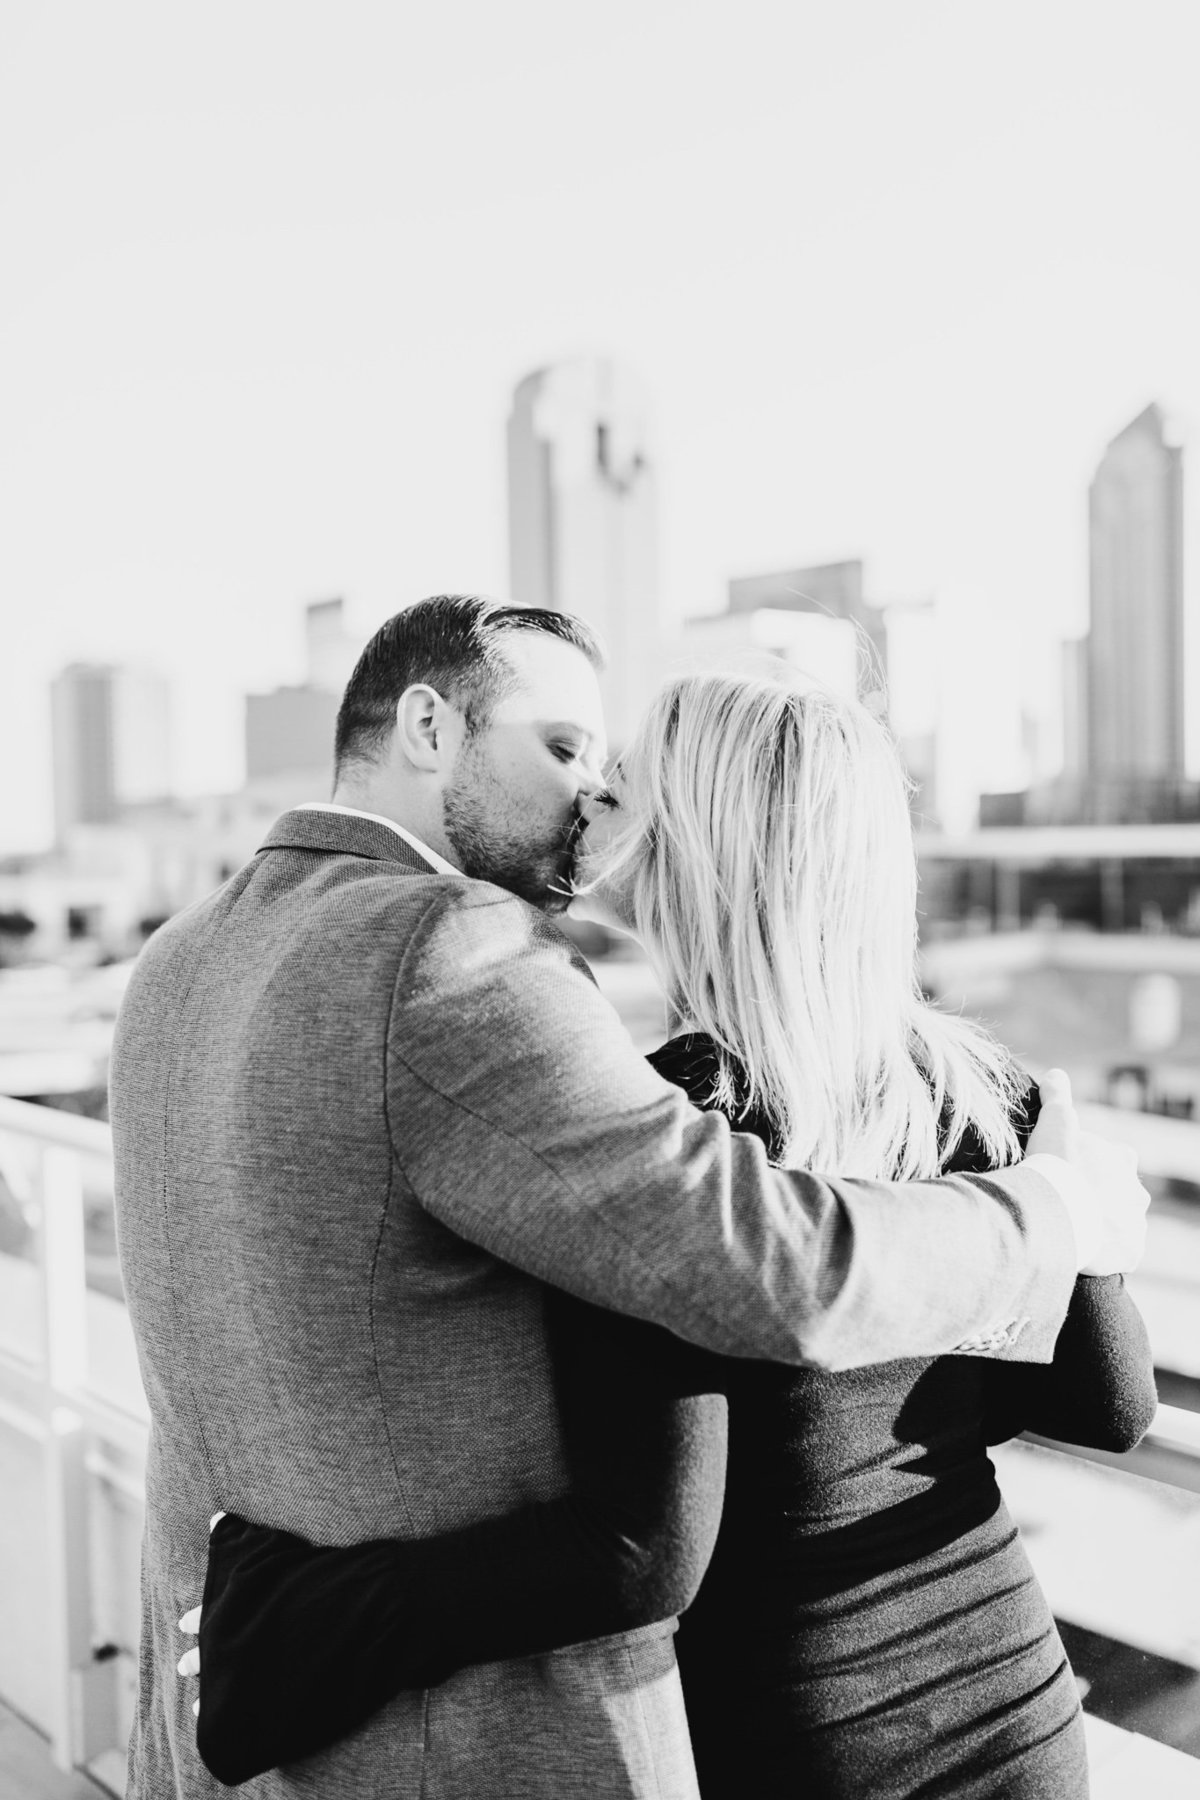 Eric & Megan - Downtown Dallas Rooftop Proposal & Engagement Session-80